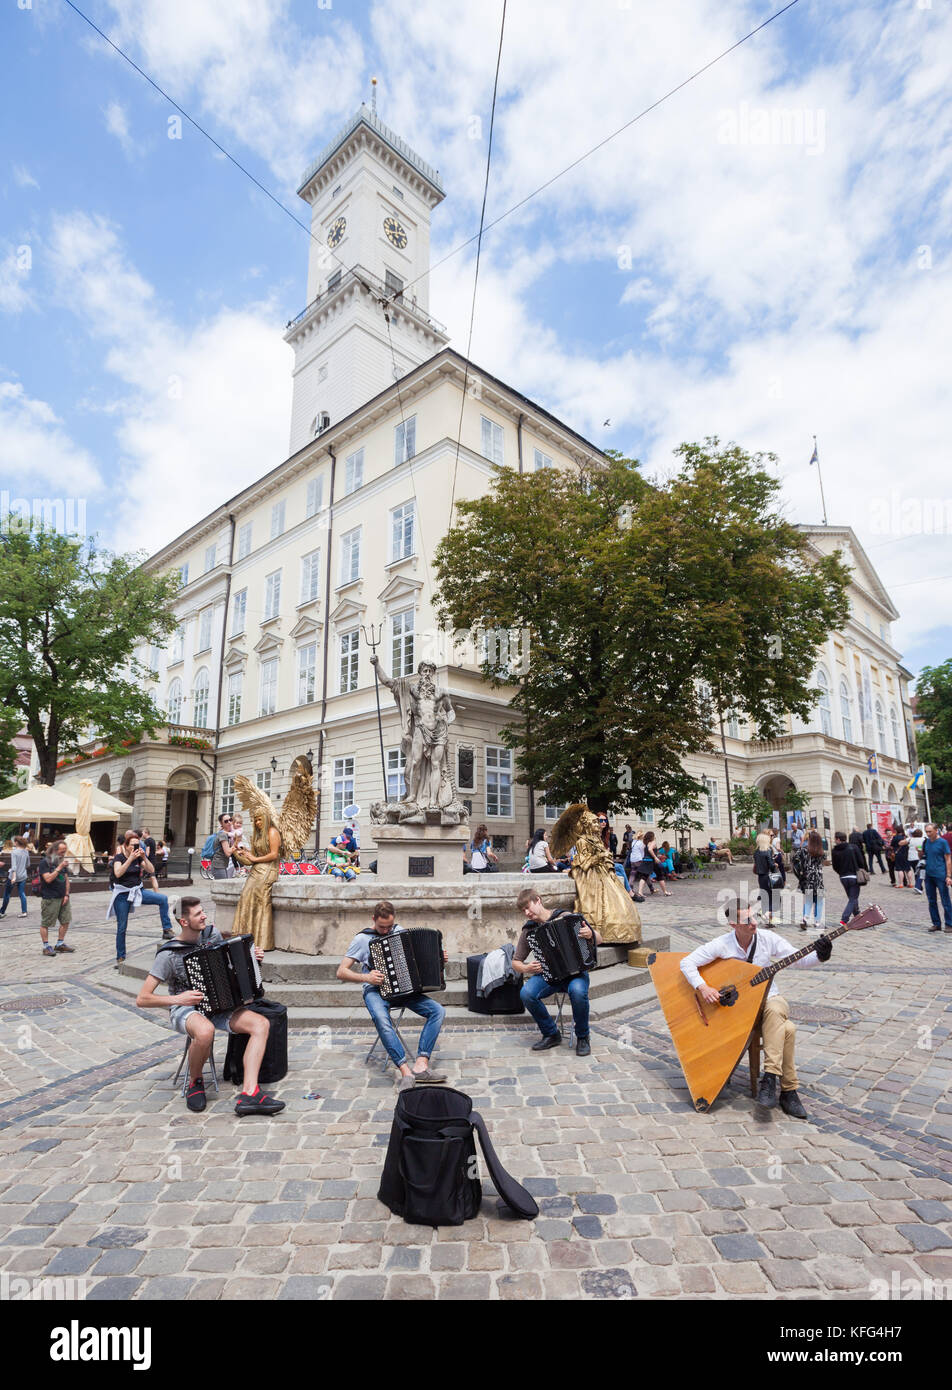 LVIV, UKRAINE - JUNE 3: Street musicians perform Bach on accordions and a balalaika contrabass in Rynok Square, - Stock Image